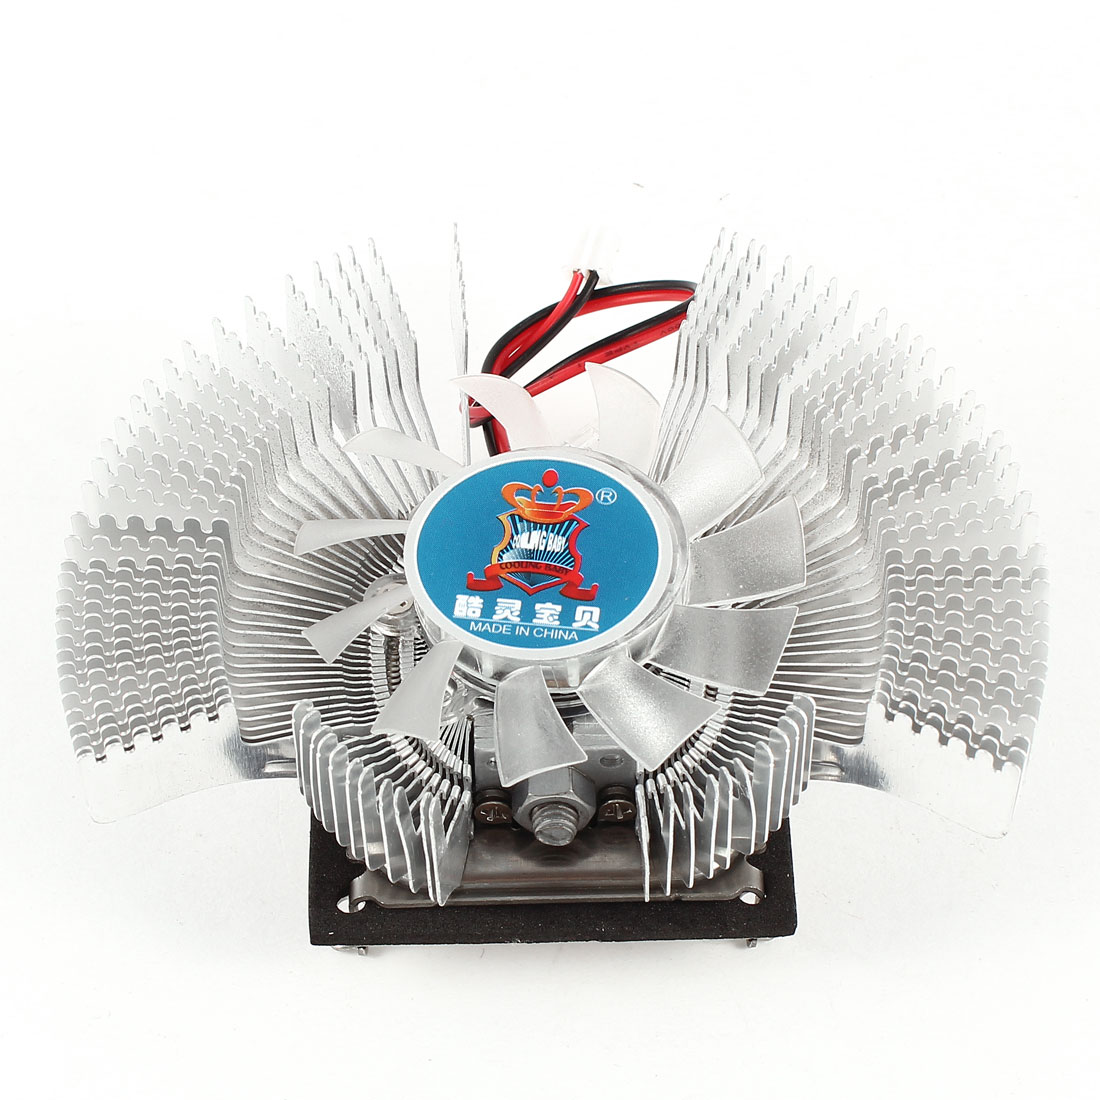 DC 12V VGA Video Card Heatsink Cooling Fan Cooler for GeForce